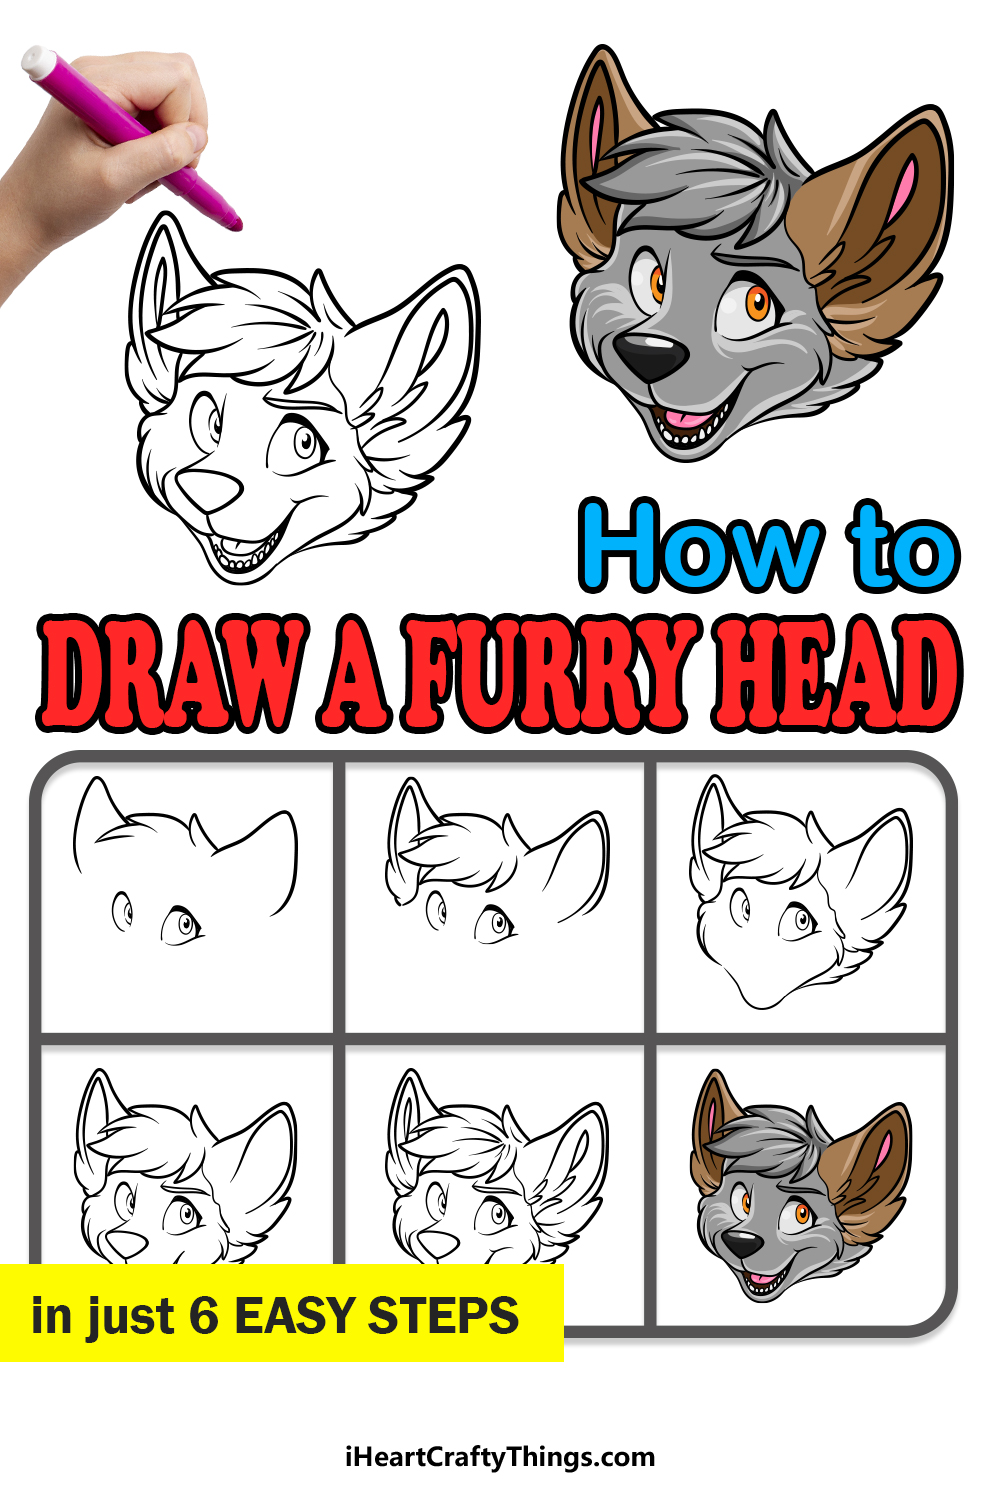 how to draw a furry head in 6 easy steps